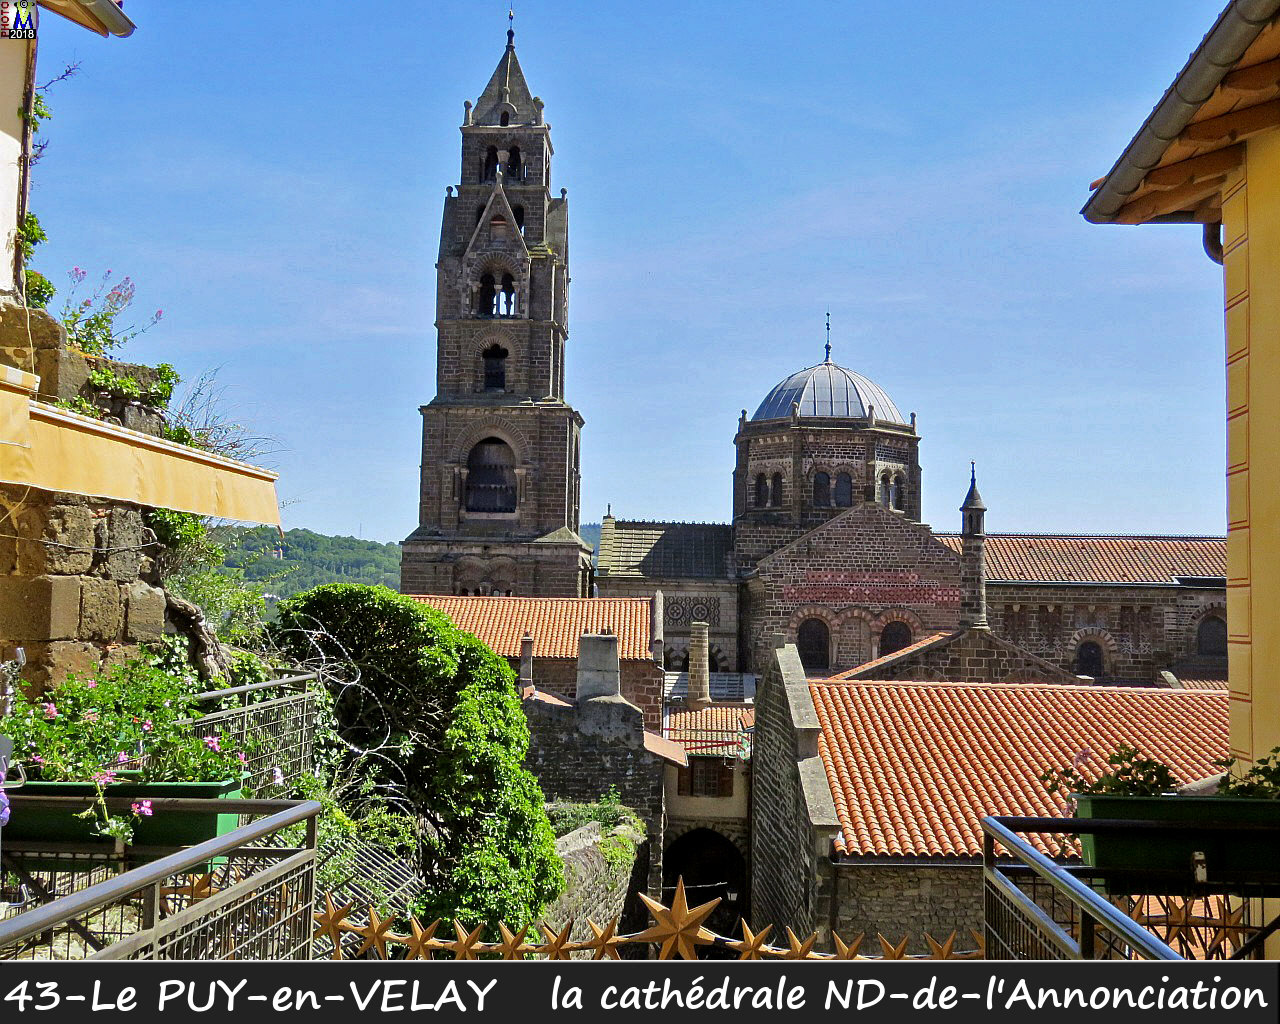 43PUY-EN-VELAY_cathedrale_106.jpg